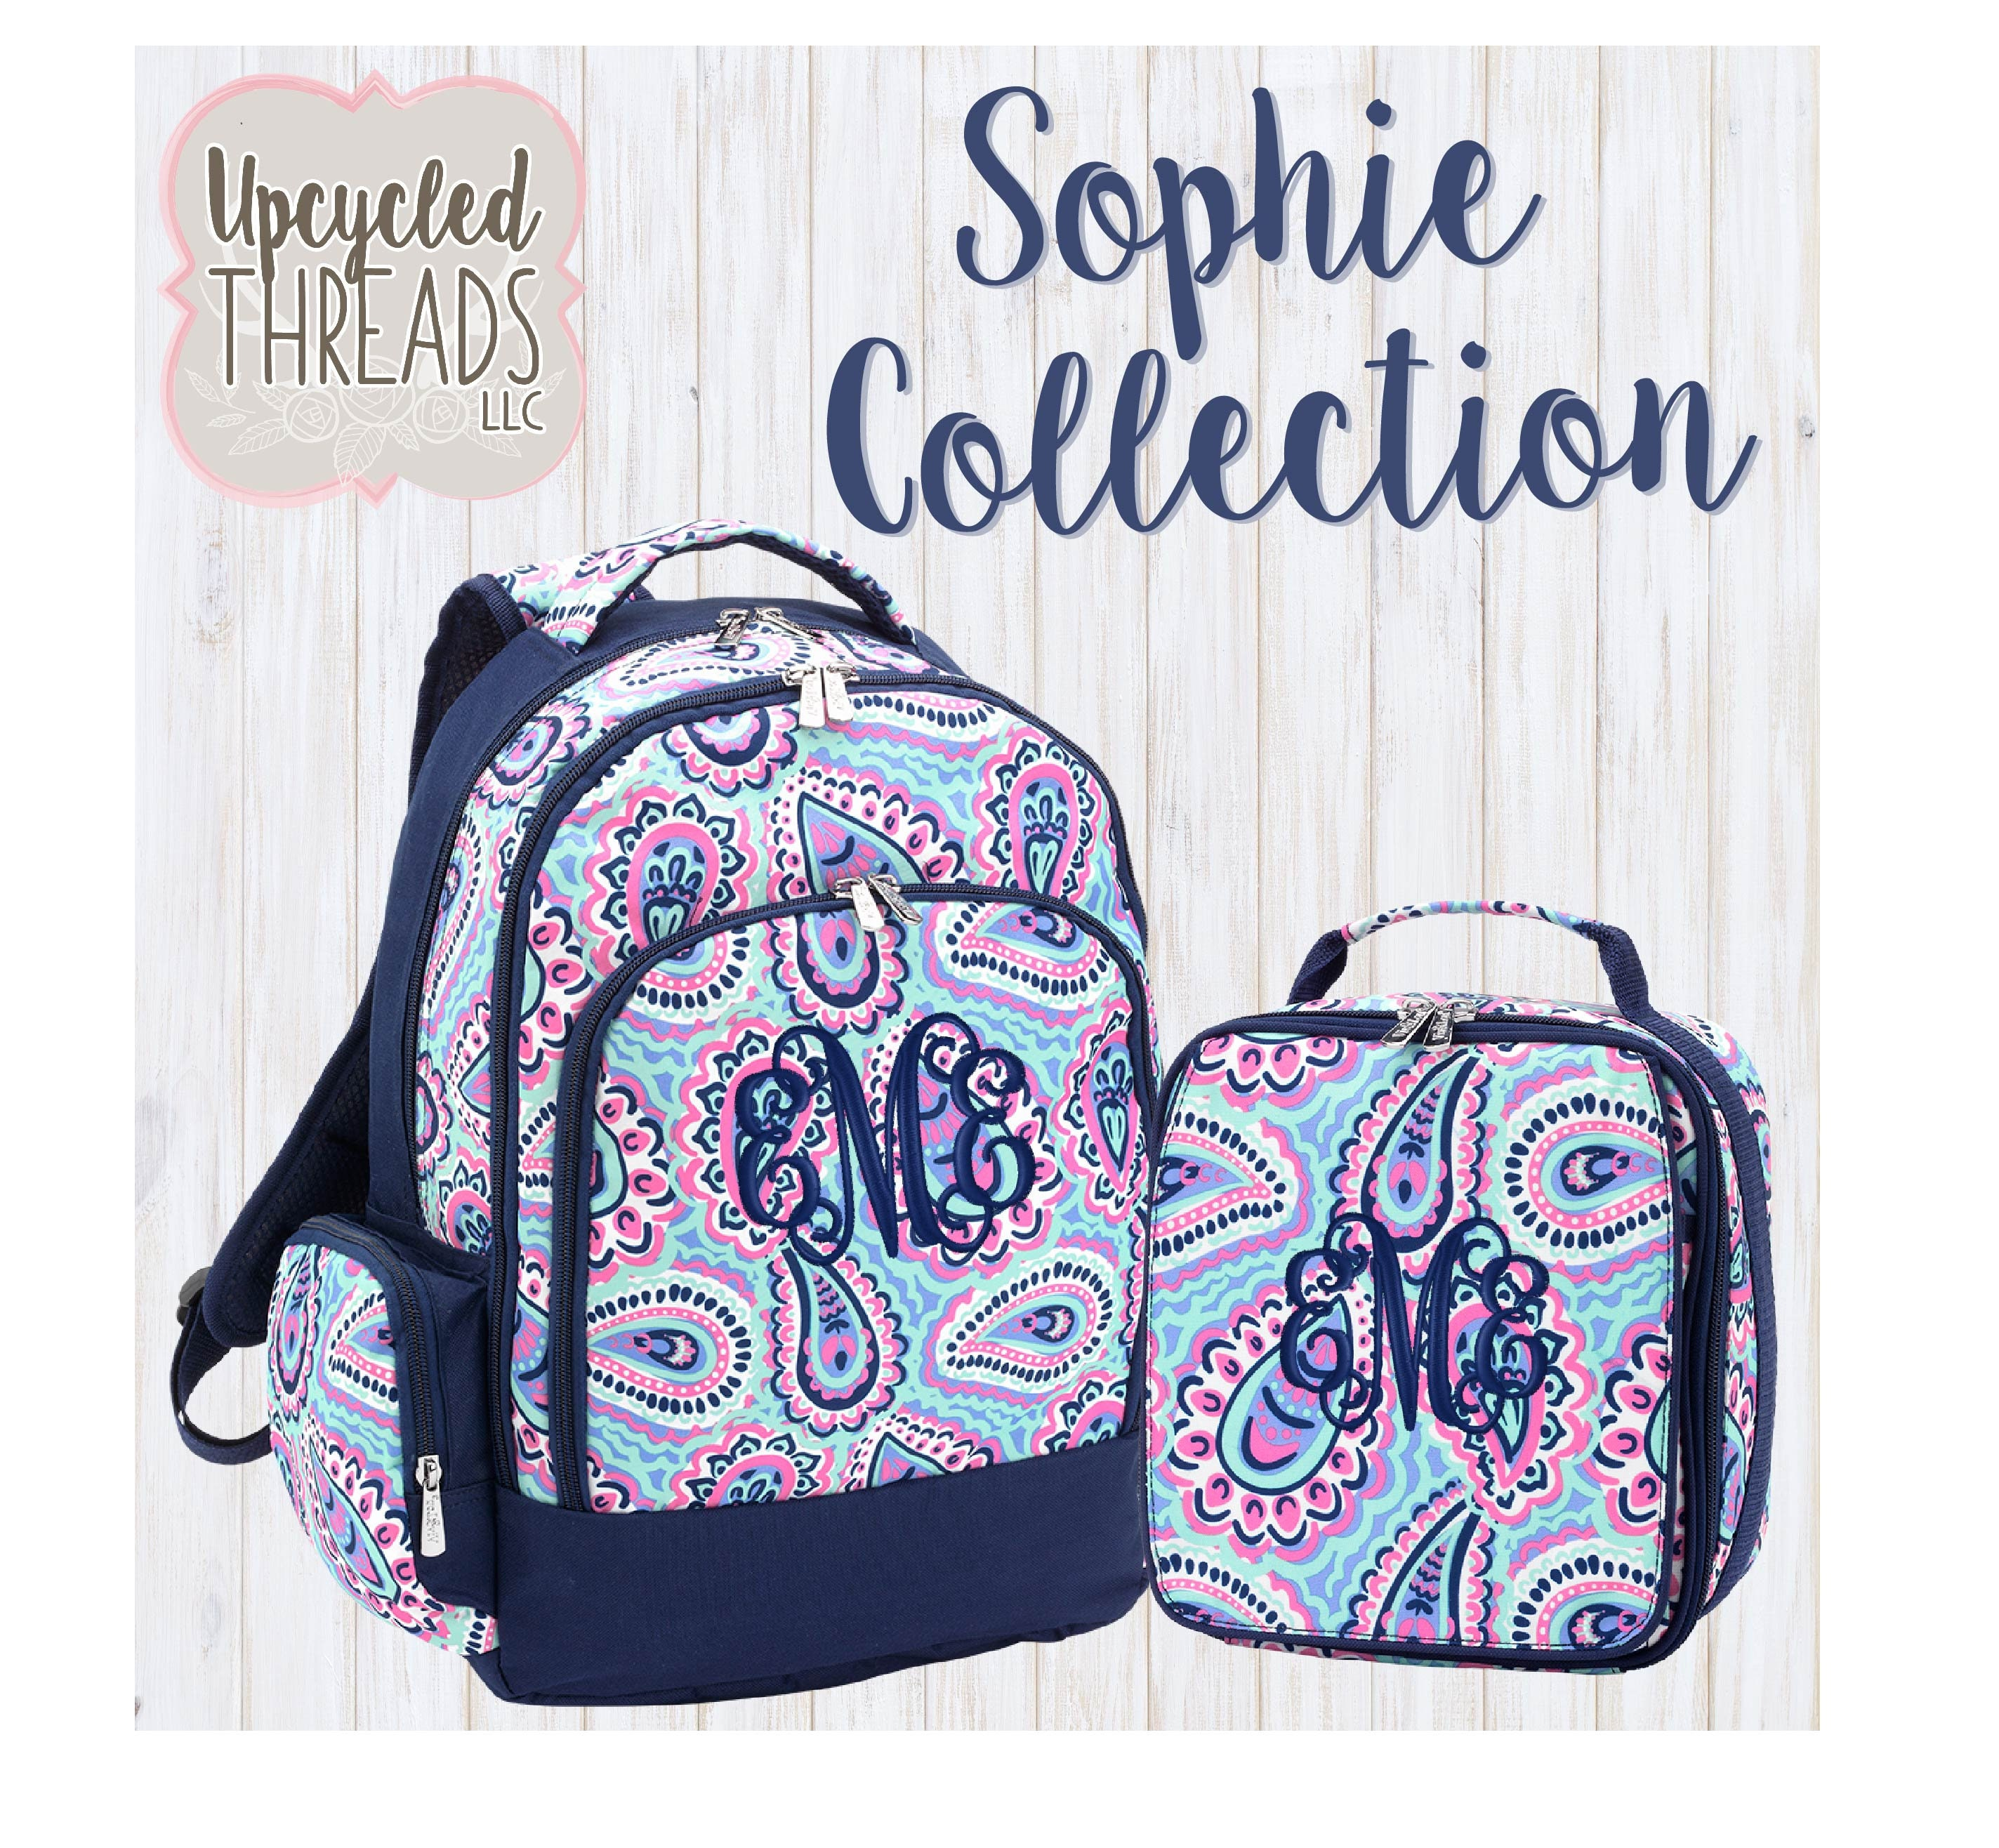 3e5605d785f Girls Monogrammed Backpack Set, Personalized Paisley Backpack ...